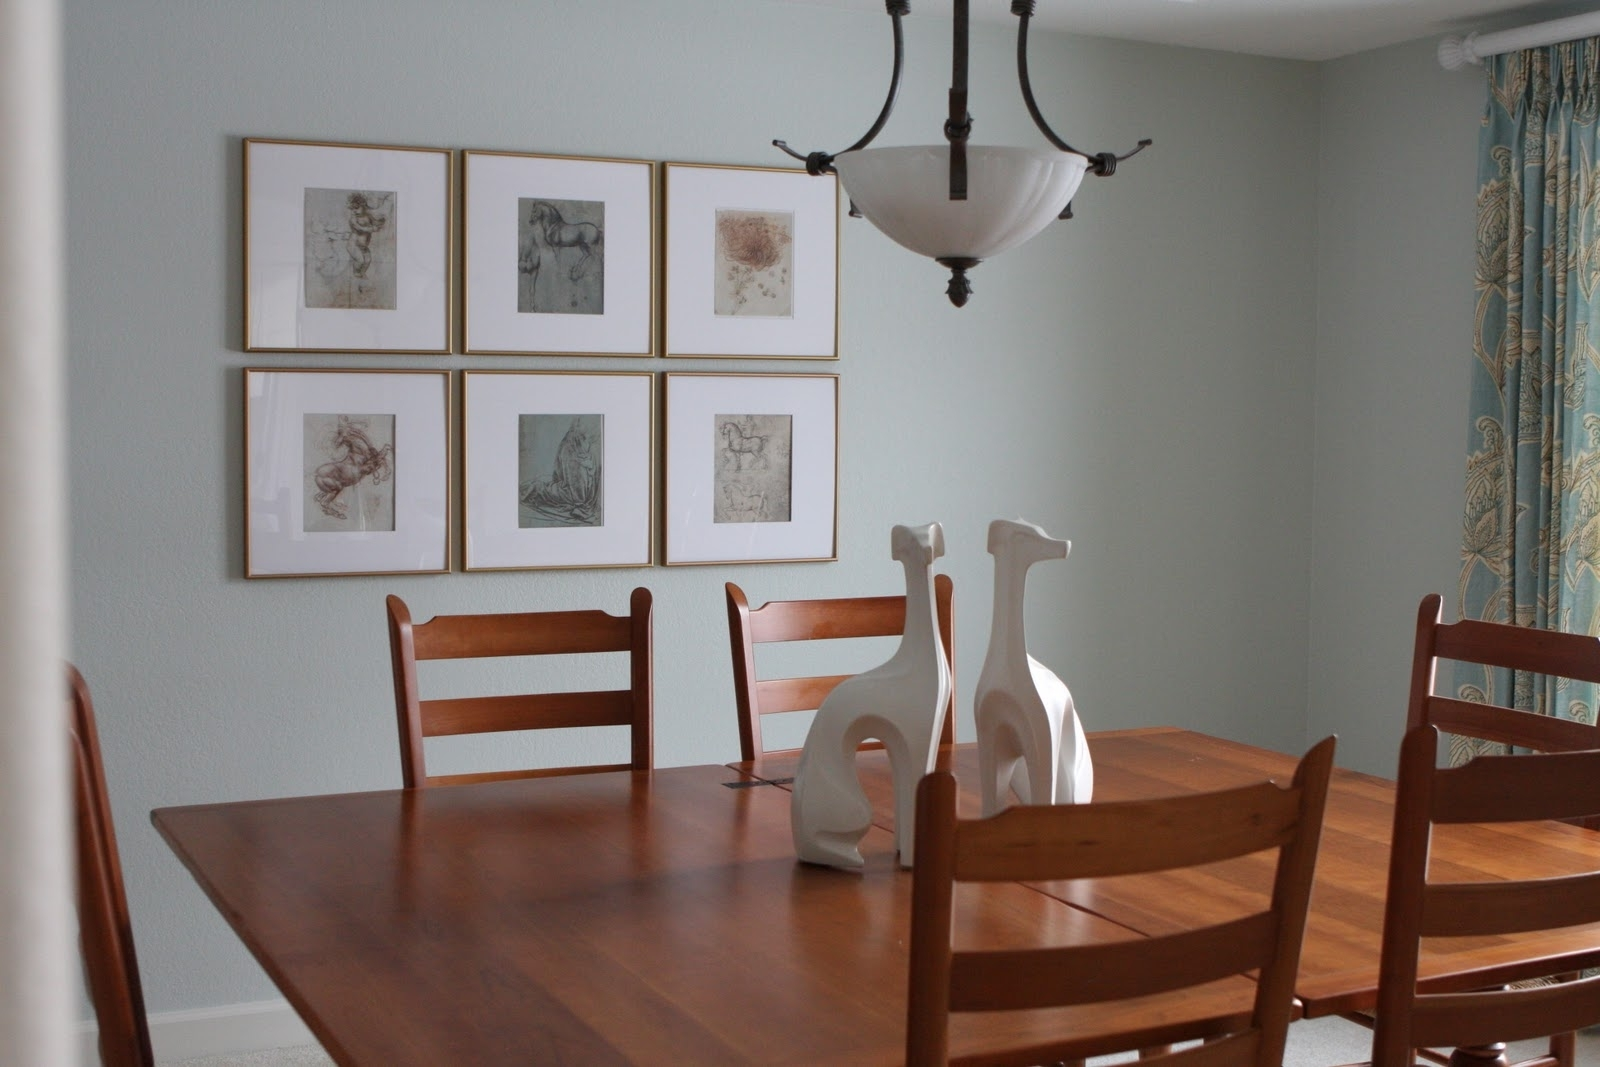 Most Recently Released Dining Room Wall Art Contemporary With Photos Of Dining Room Decor Regarding Dining Room Wall Art (Gallery 11 of 15)